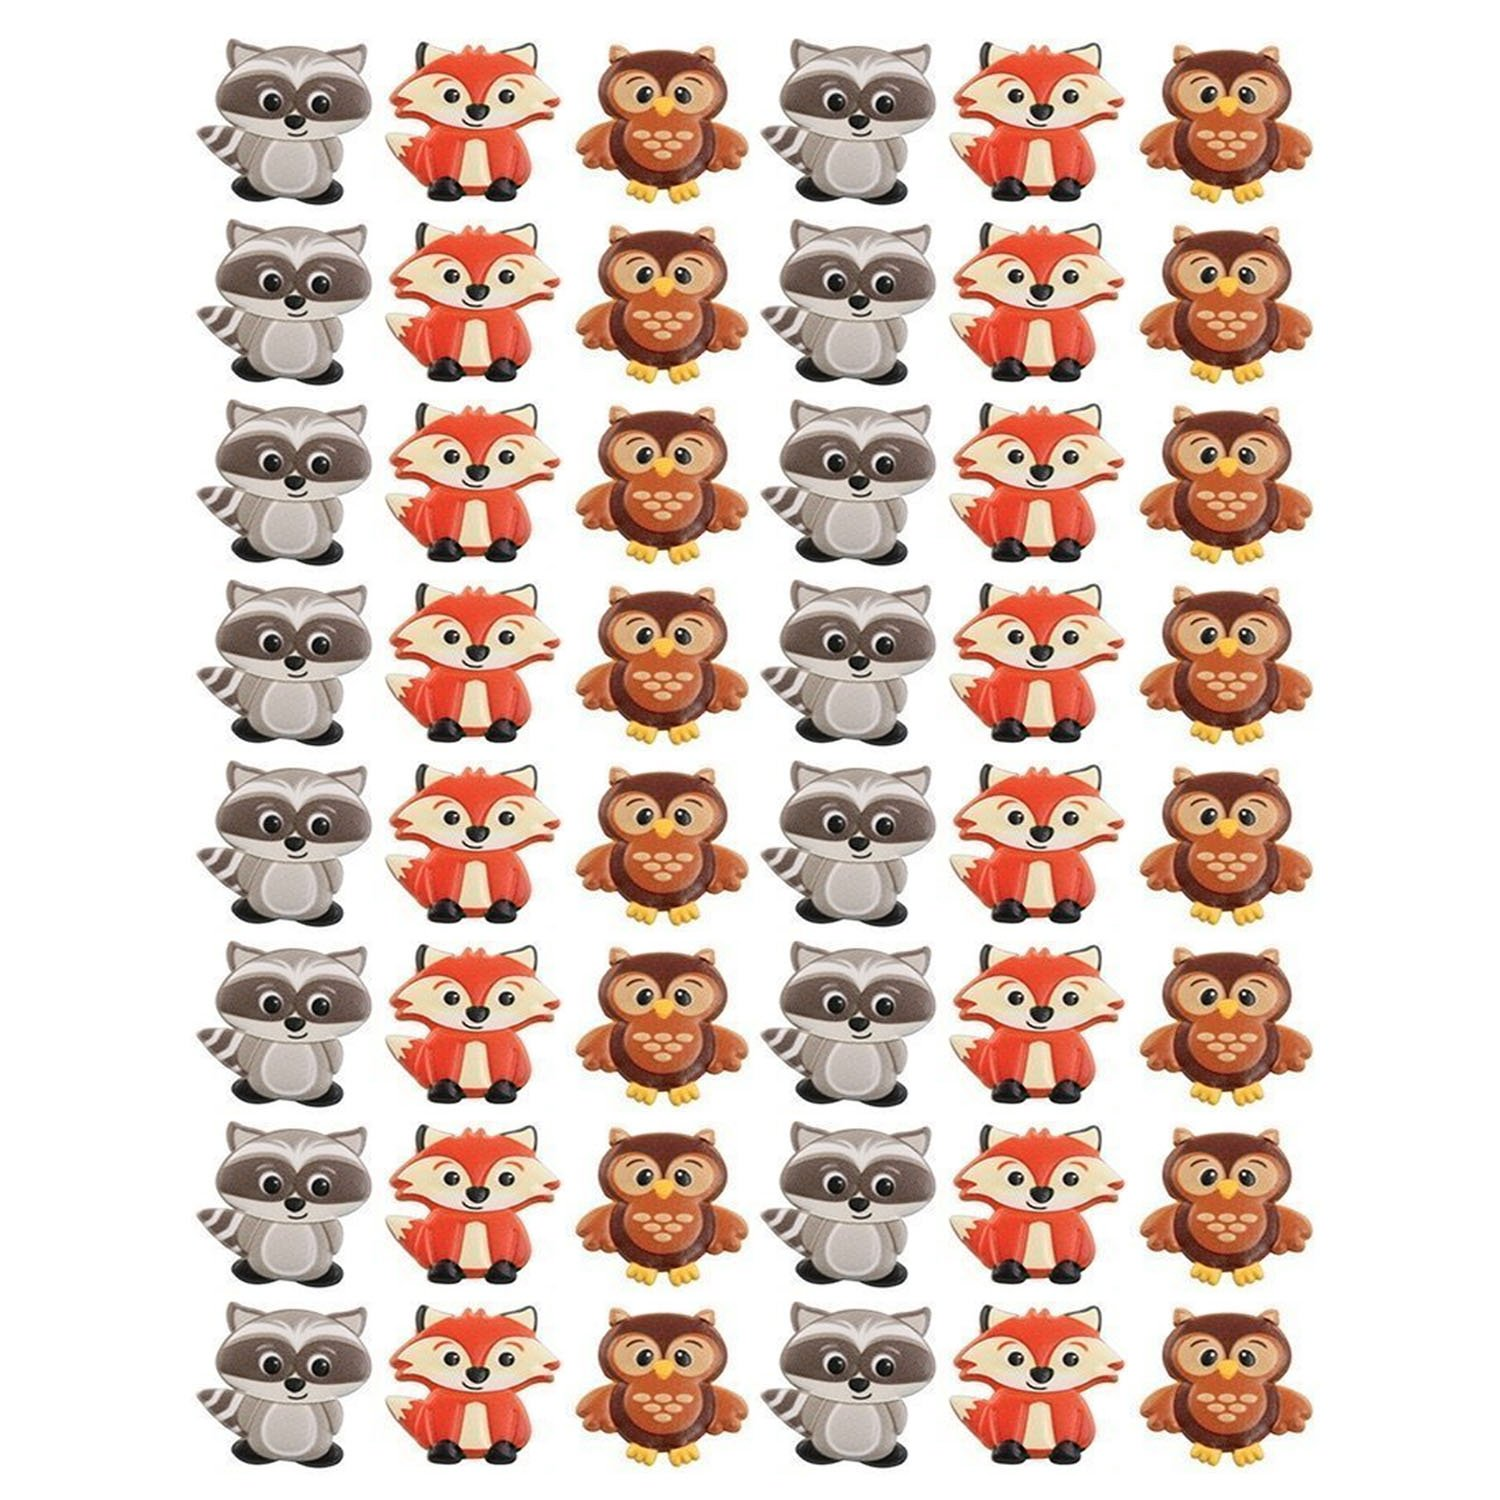 Woodland Animal Friends Cupcake Rings by Bakery Supplies (48-Pack) by DecoPac